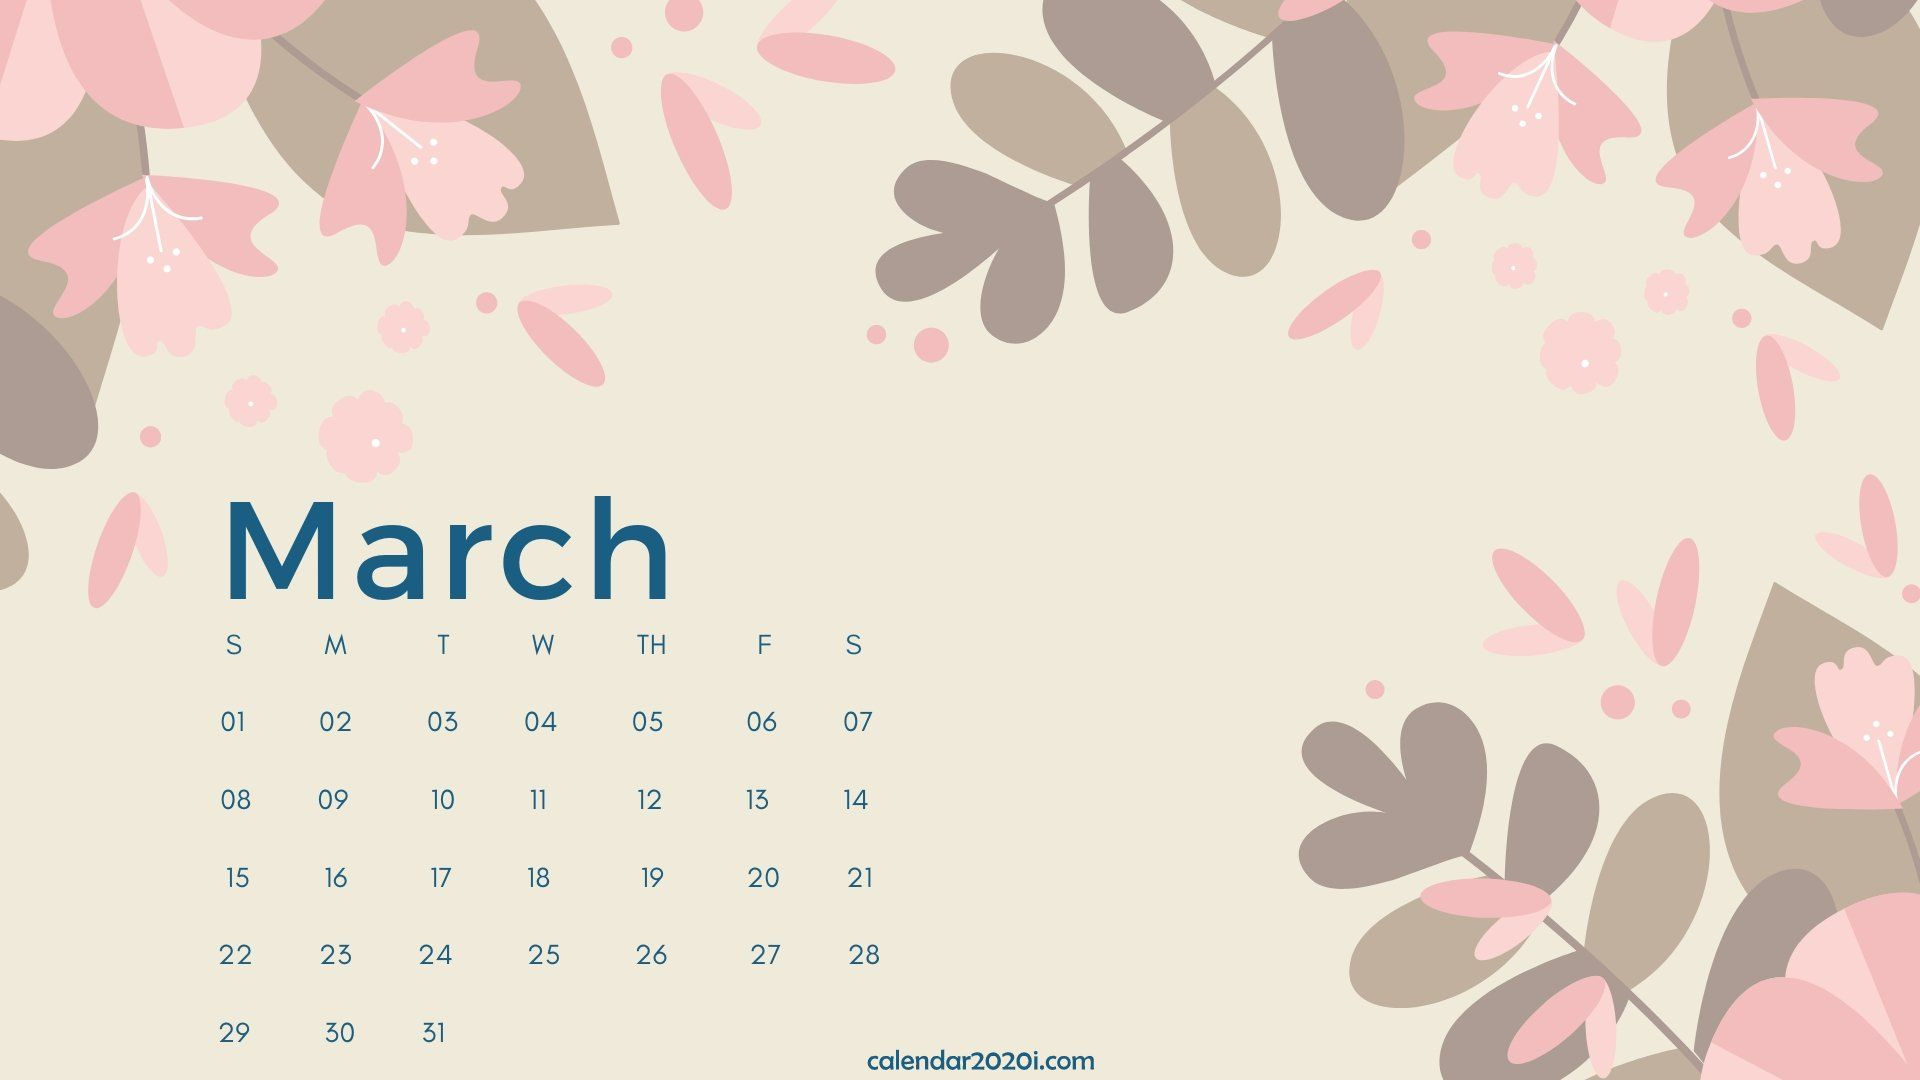 March 2020 Calendar Desktop Wallpaper Calendar wallpaper 1920x1080